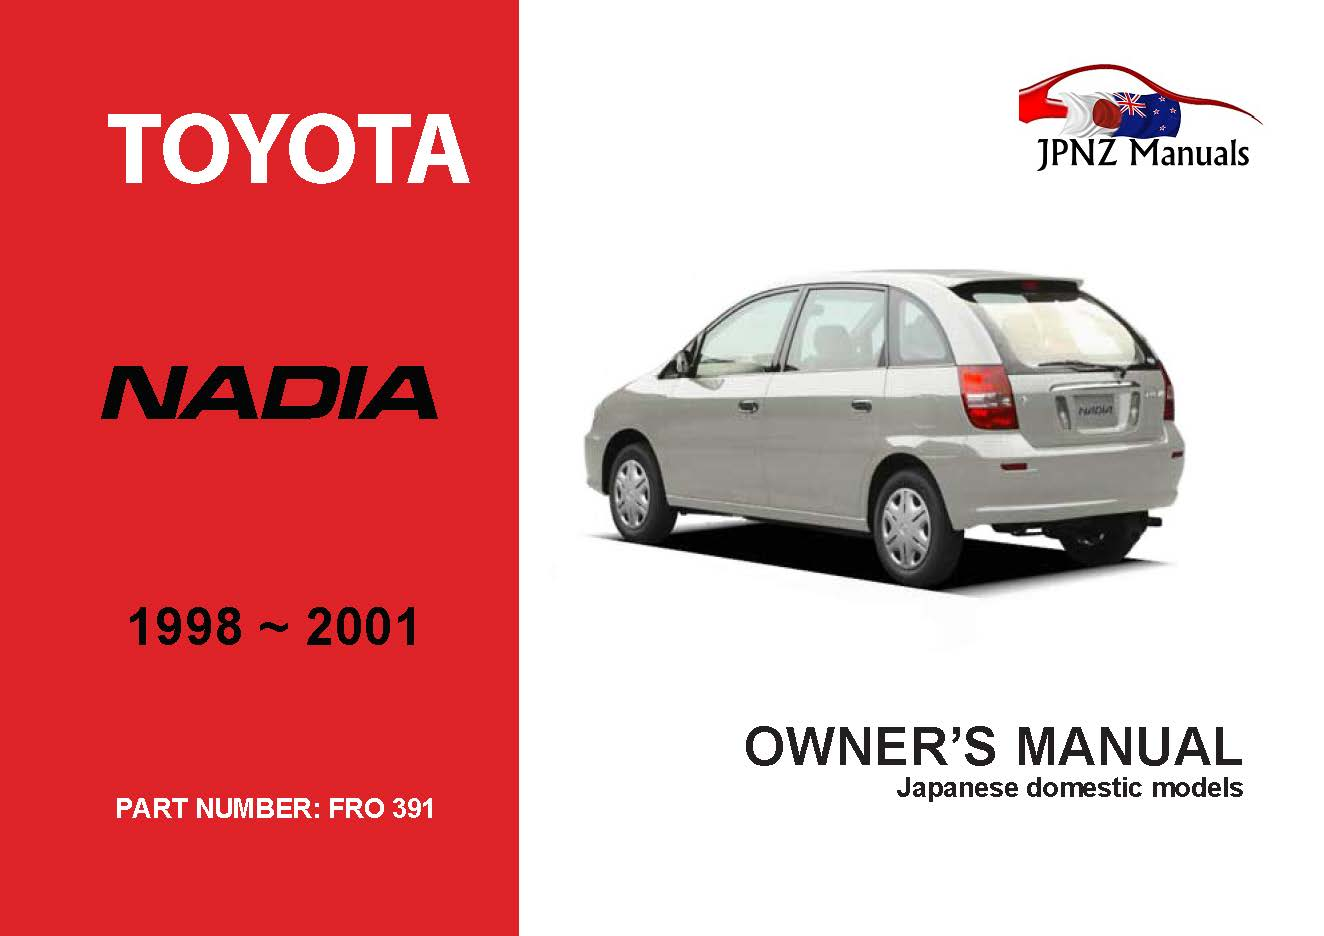 Toyota – Nadia car owners manual | 1998 – 2001